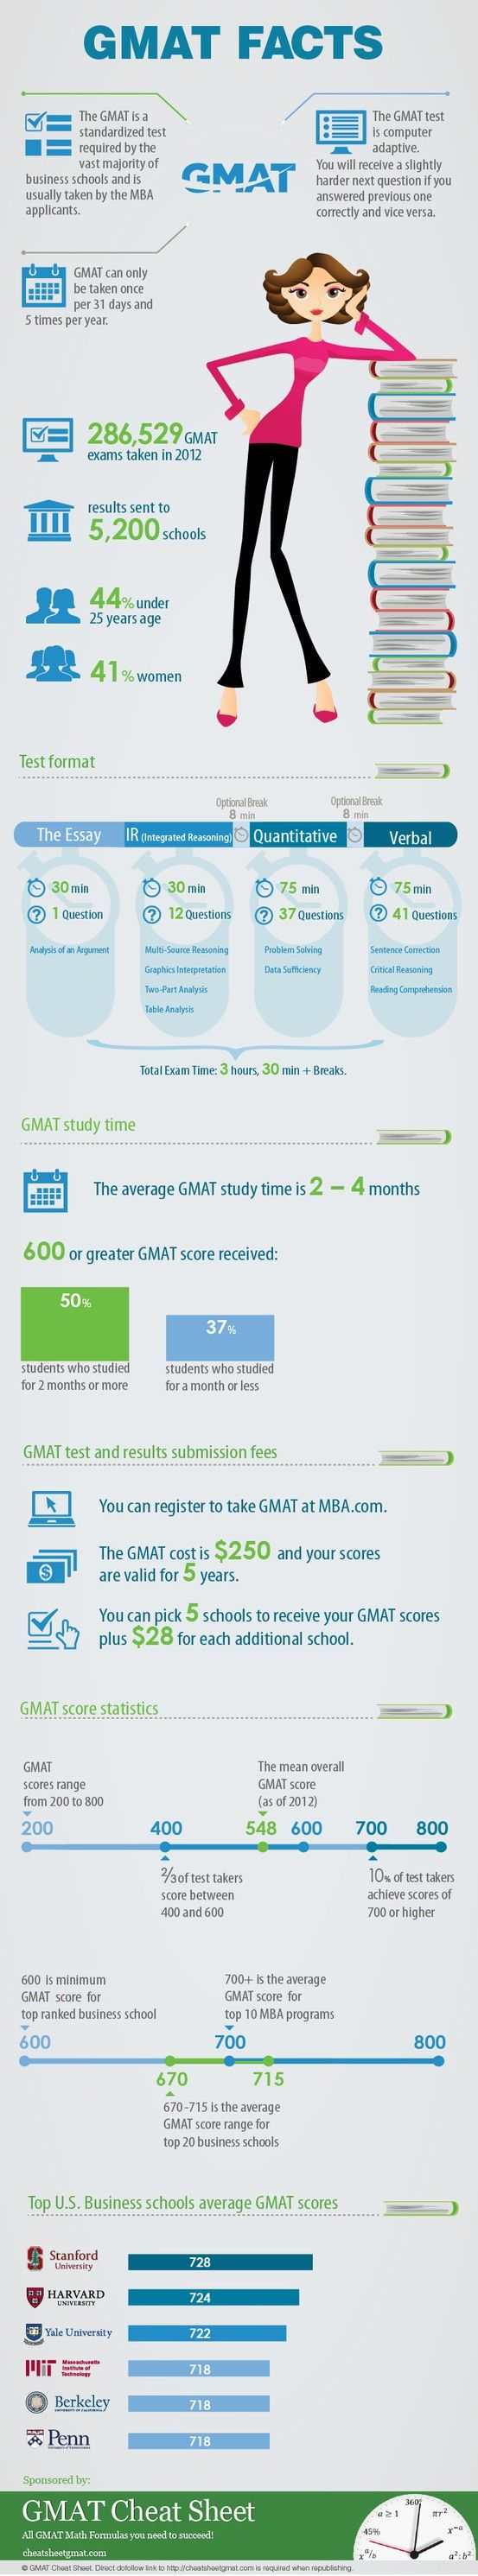 Gmat facts is a nicely designed compilation of various information about gmat in one place test format average scores fees study times top u